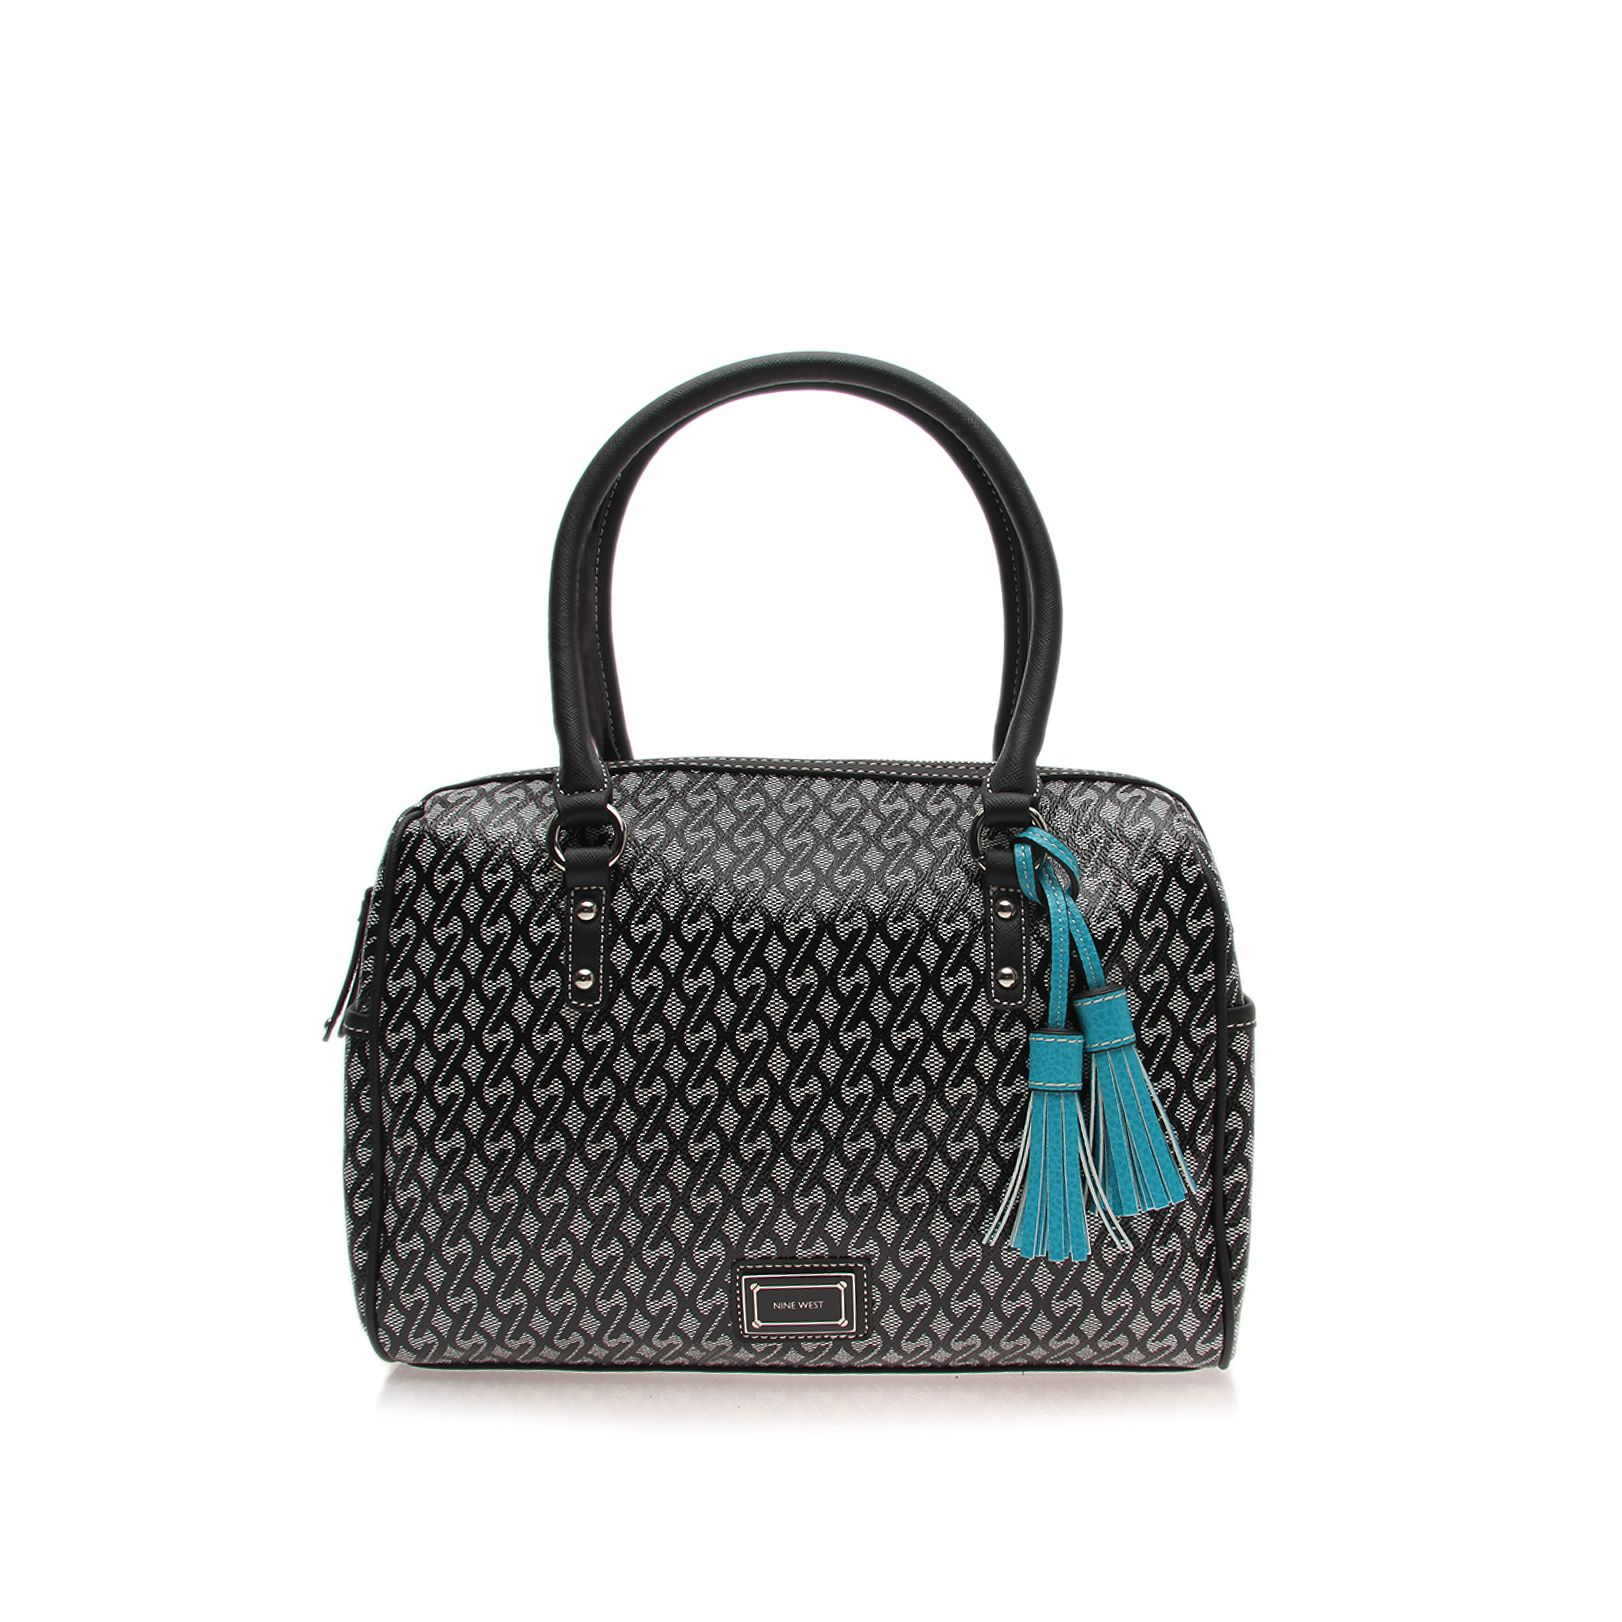 Showstopper black tote bag